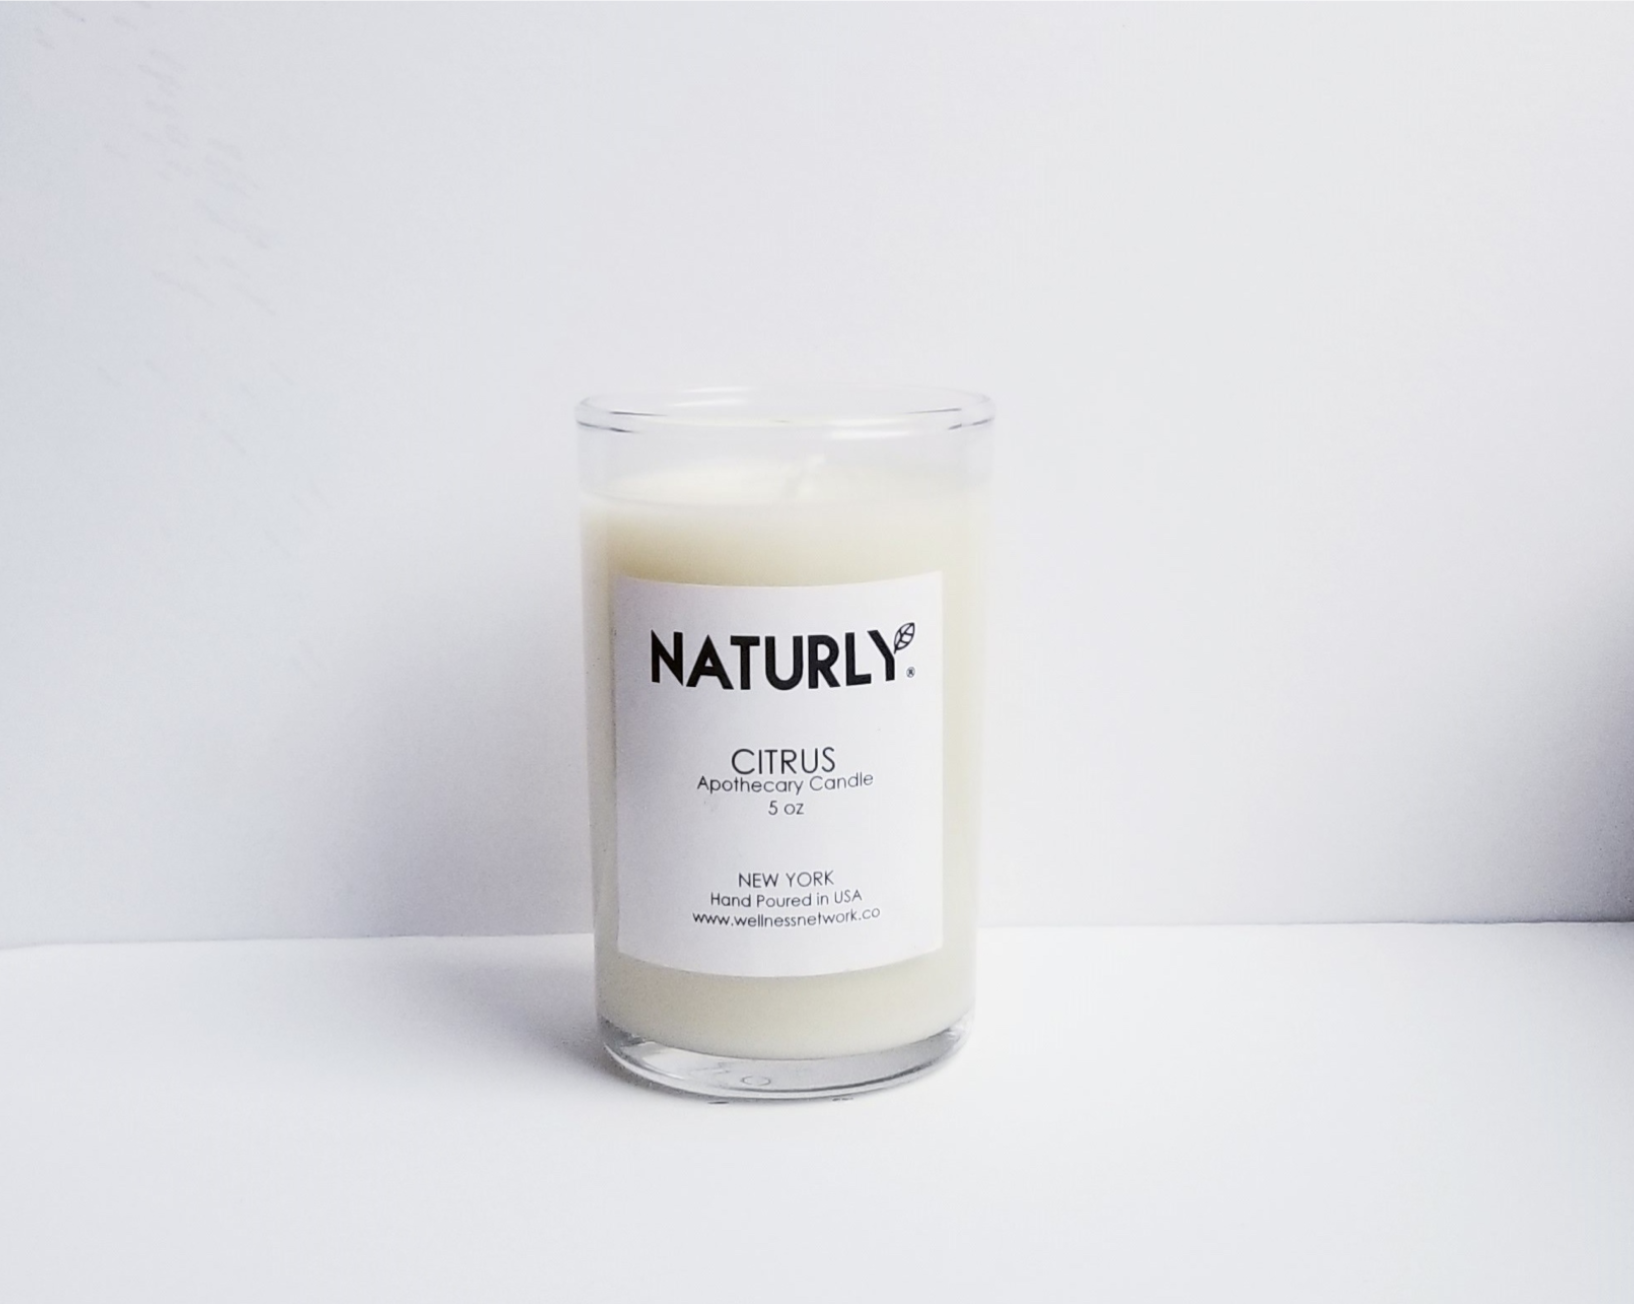 Candle: coconut wax, lemon & grapefruit oils - $24